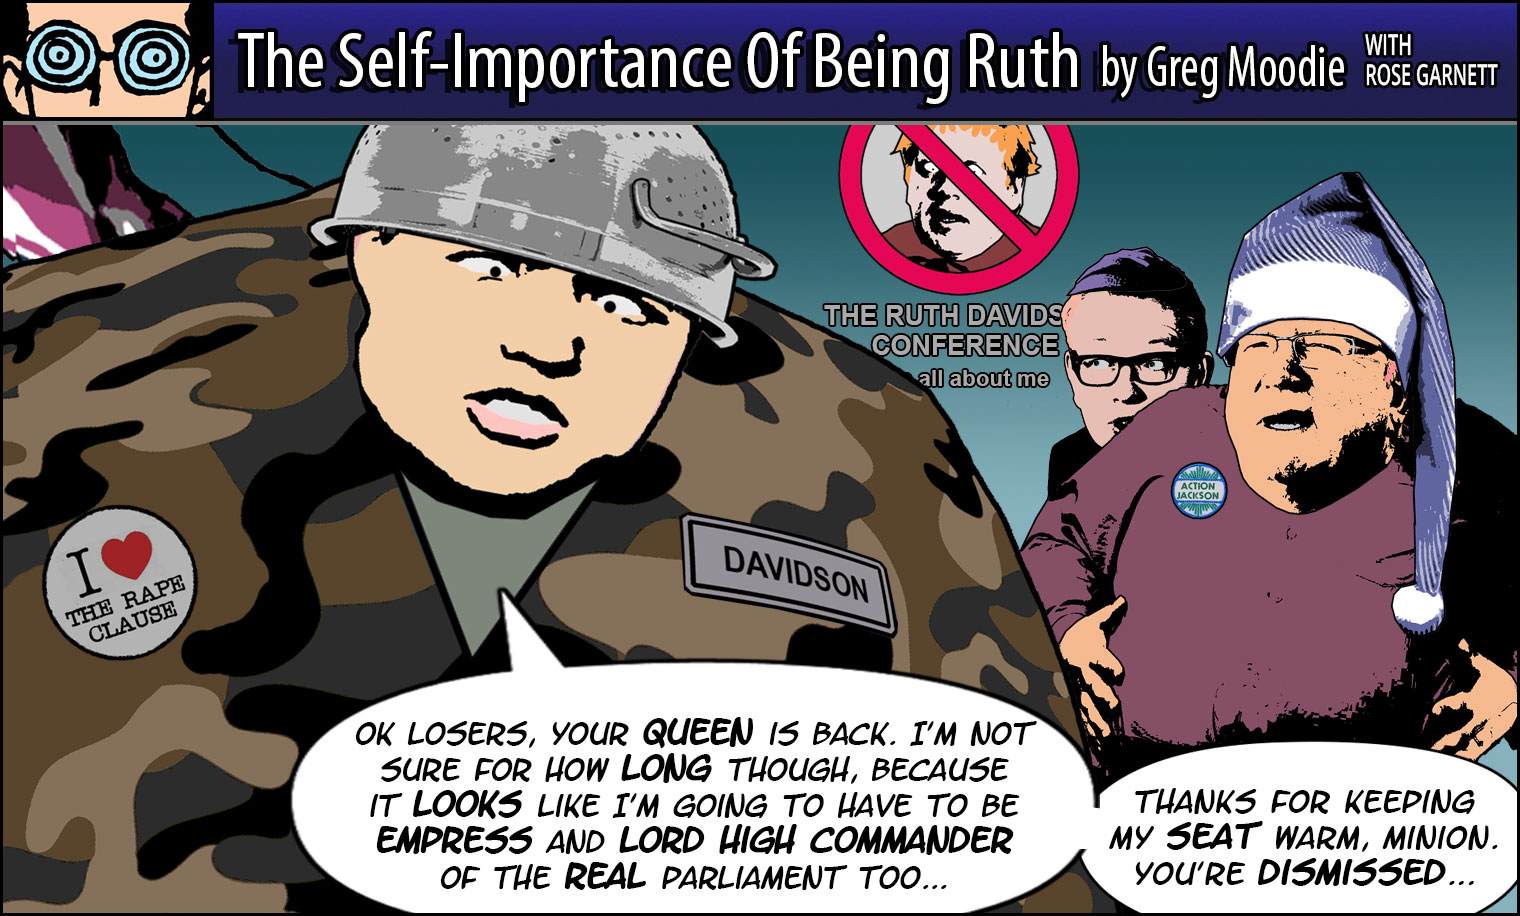 The Self-Importance Of Being Ruth